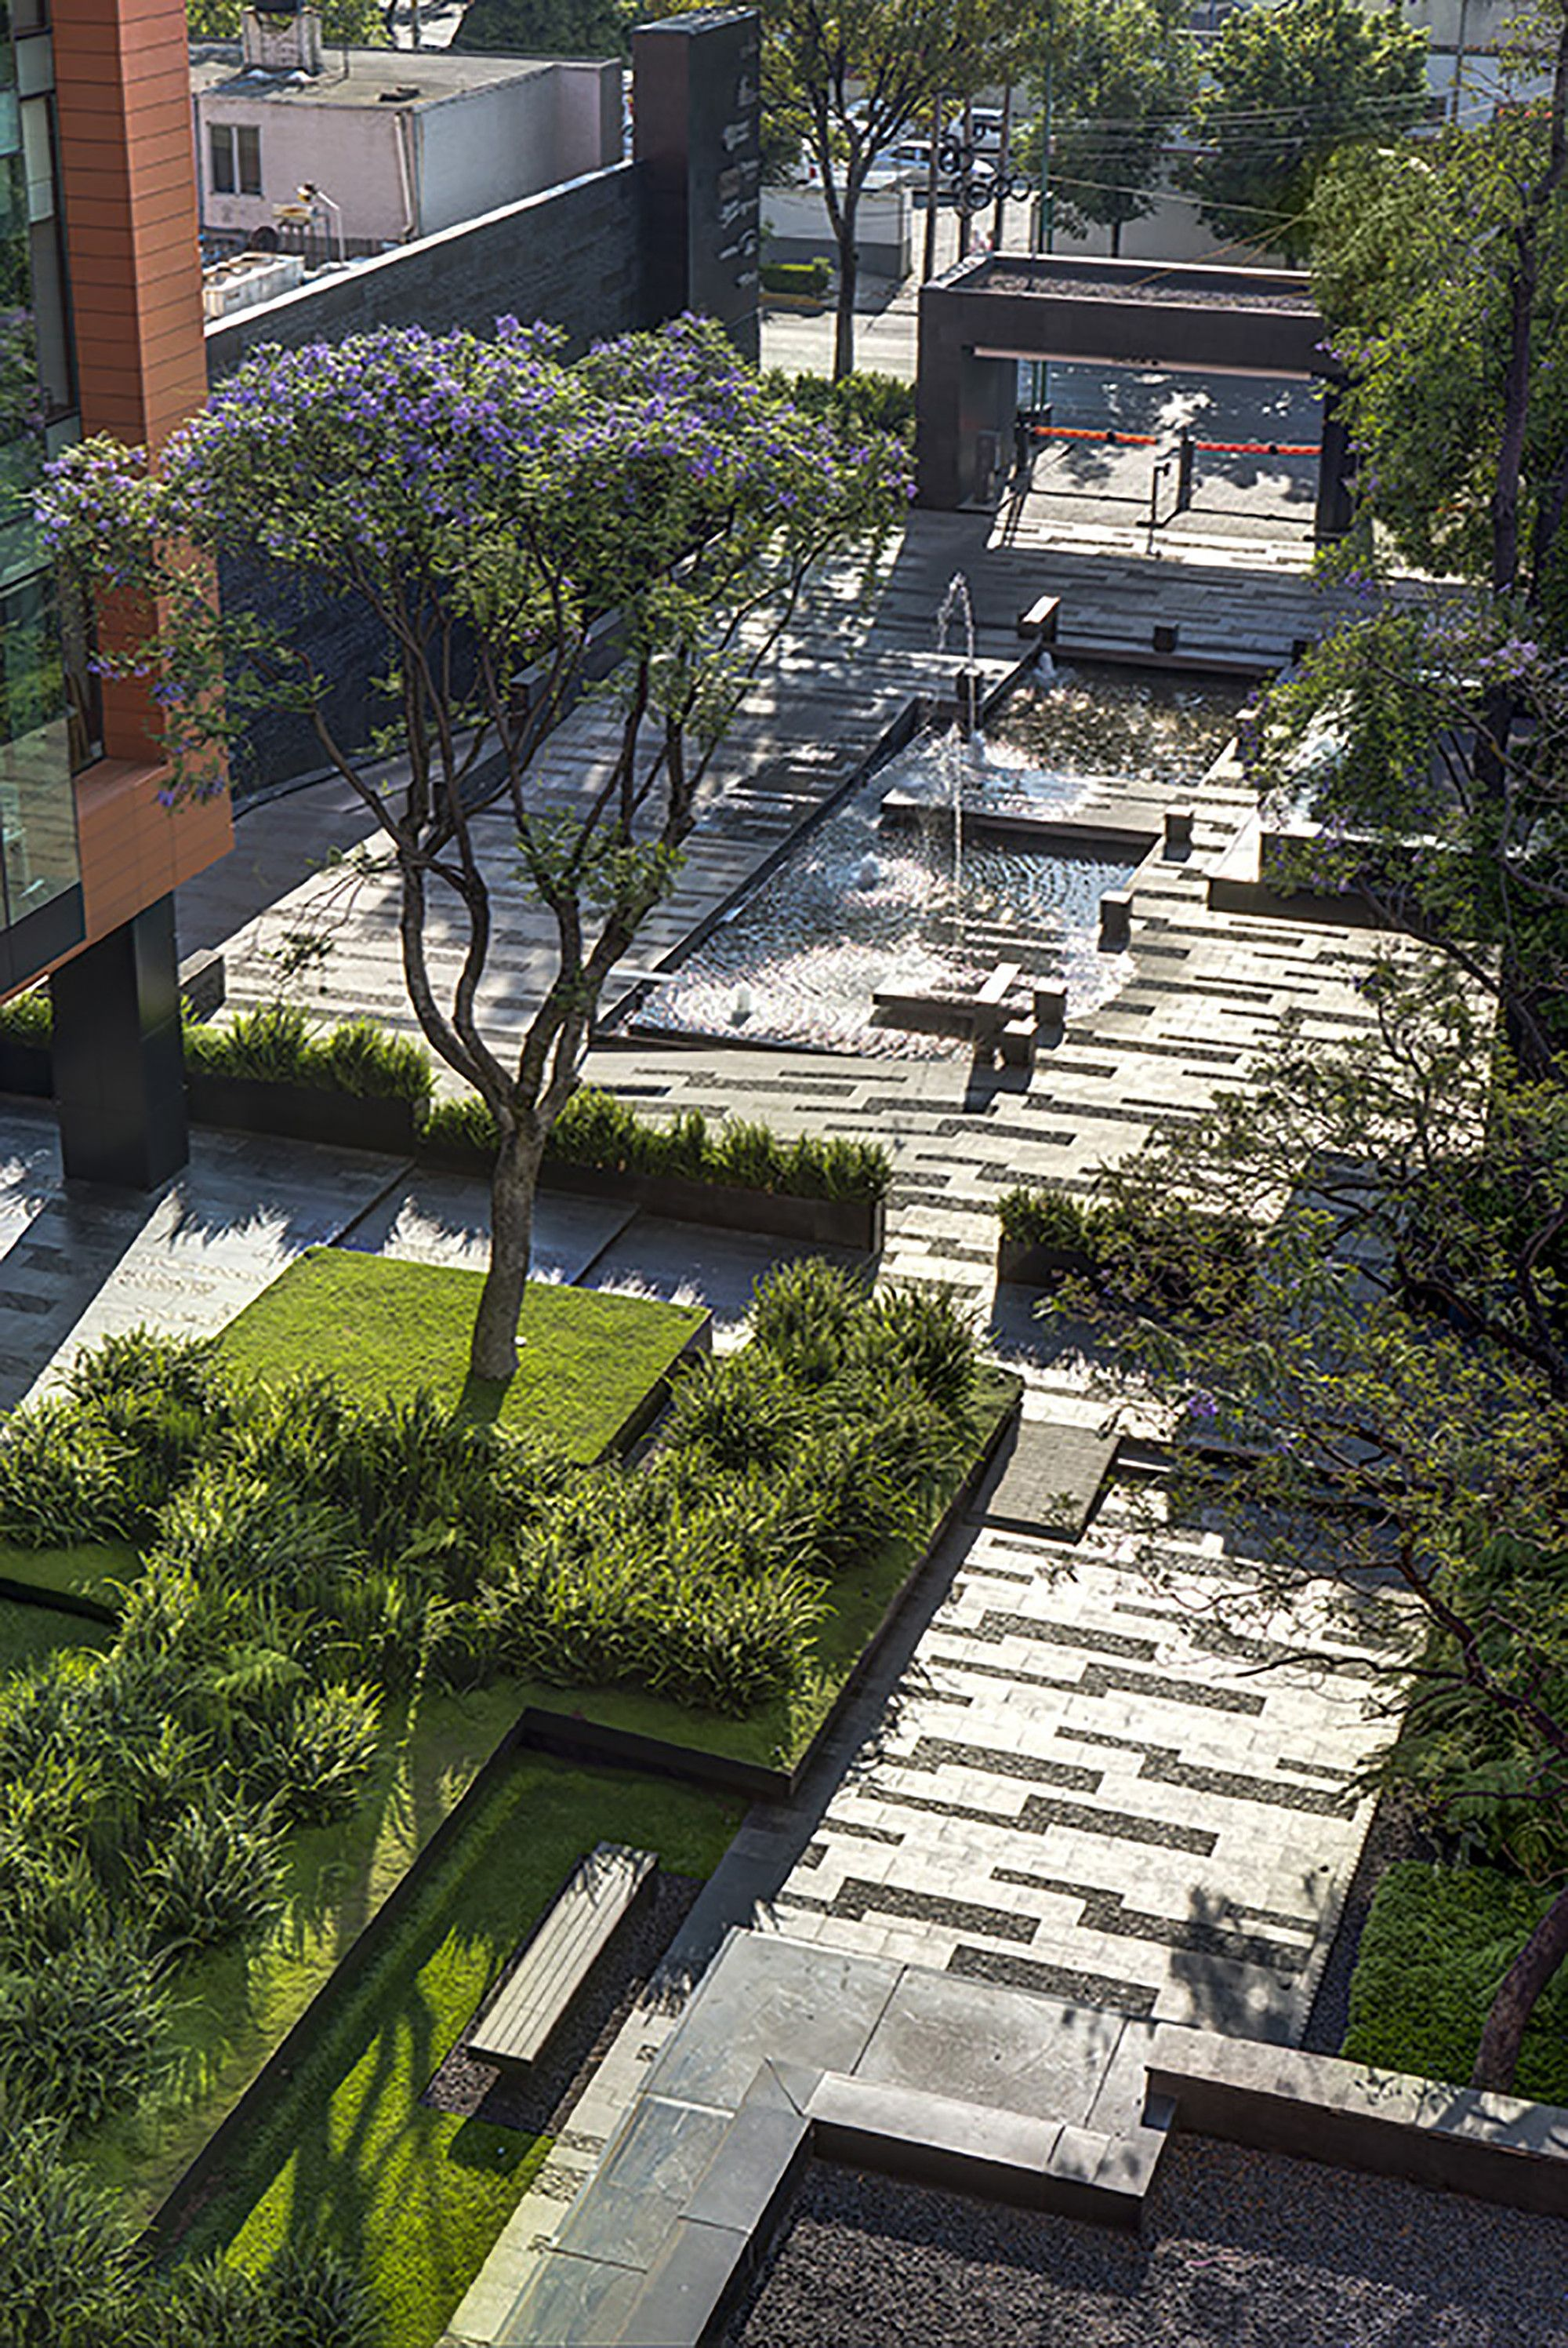 Galeria de paisagismo no campus corporativo coyoac n dlc for Park landscape design